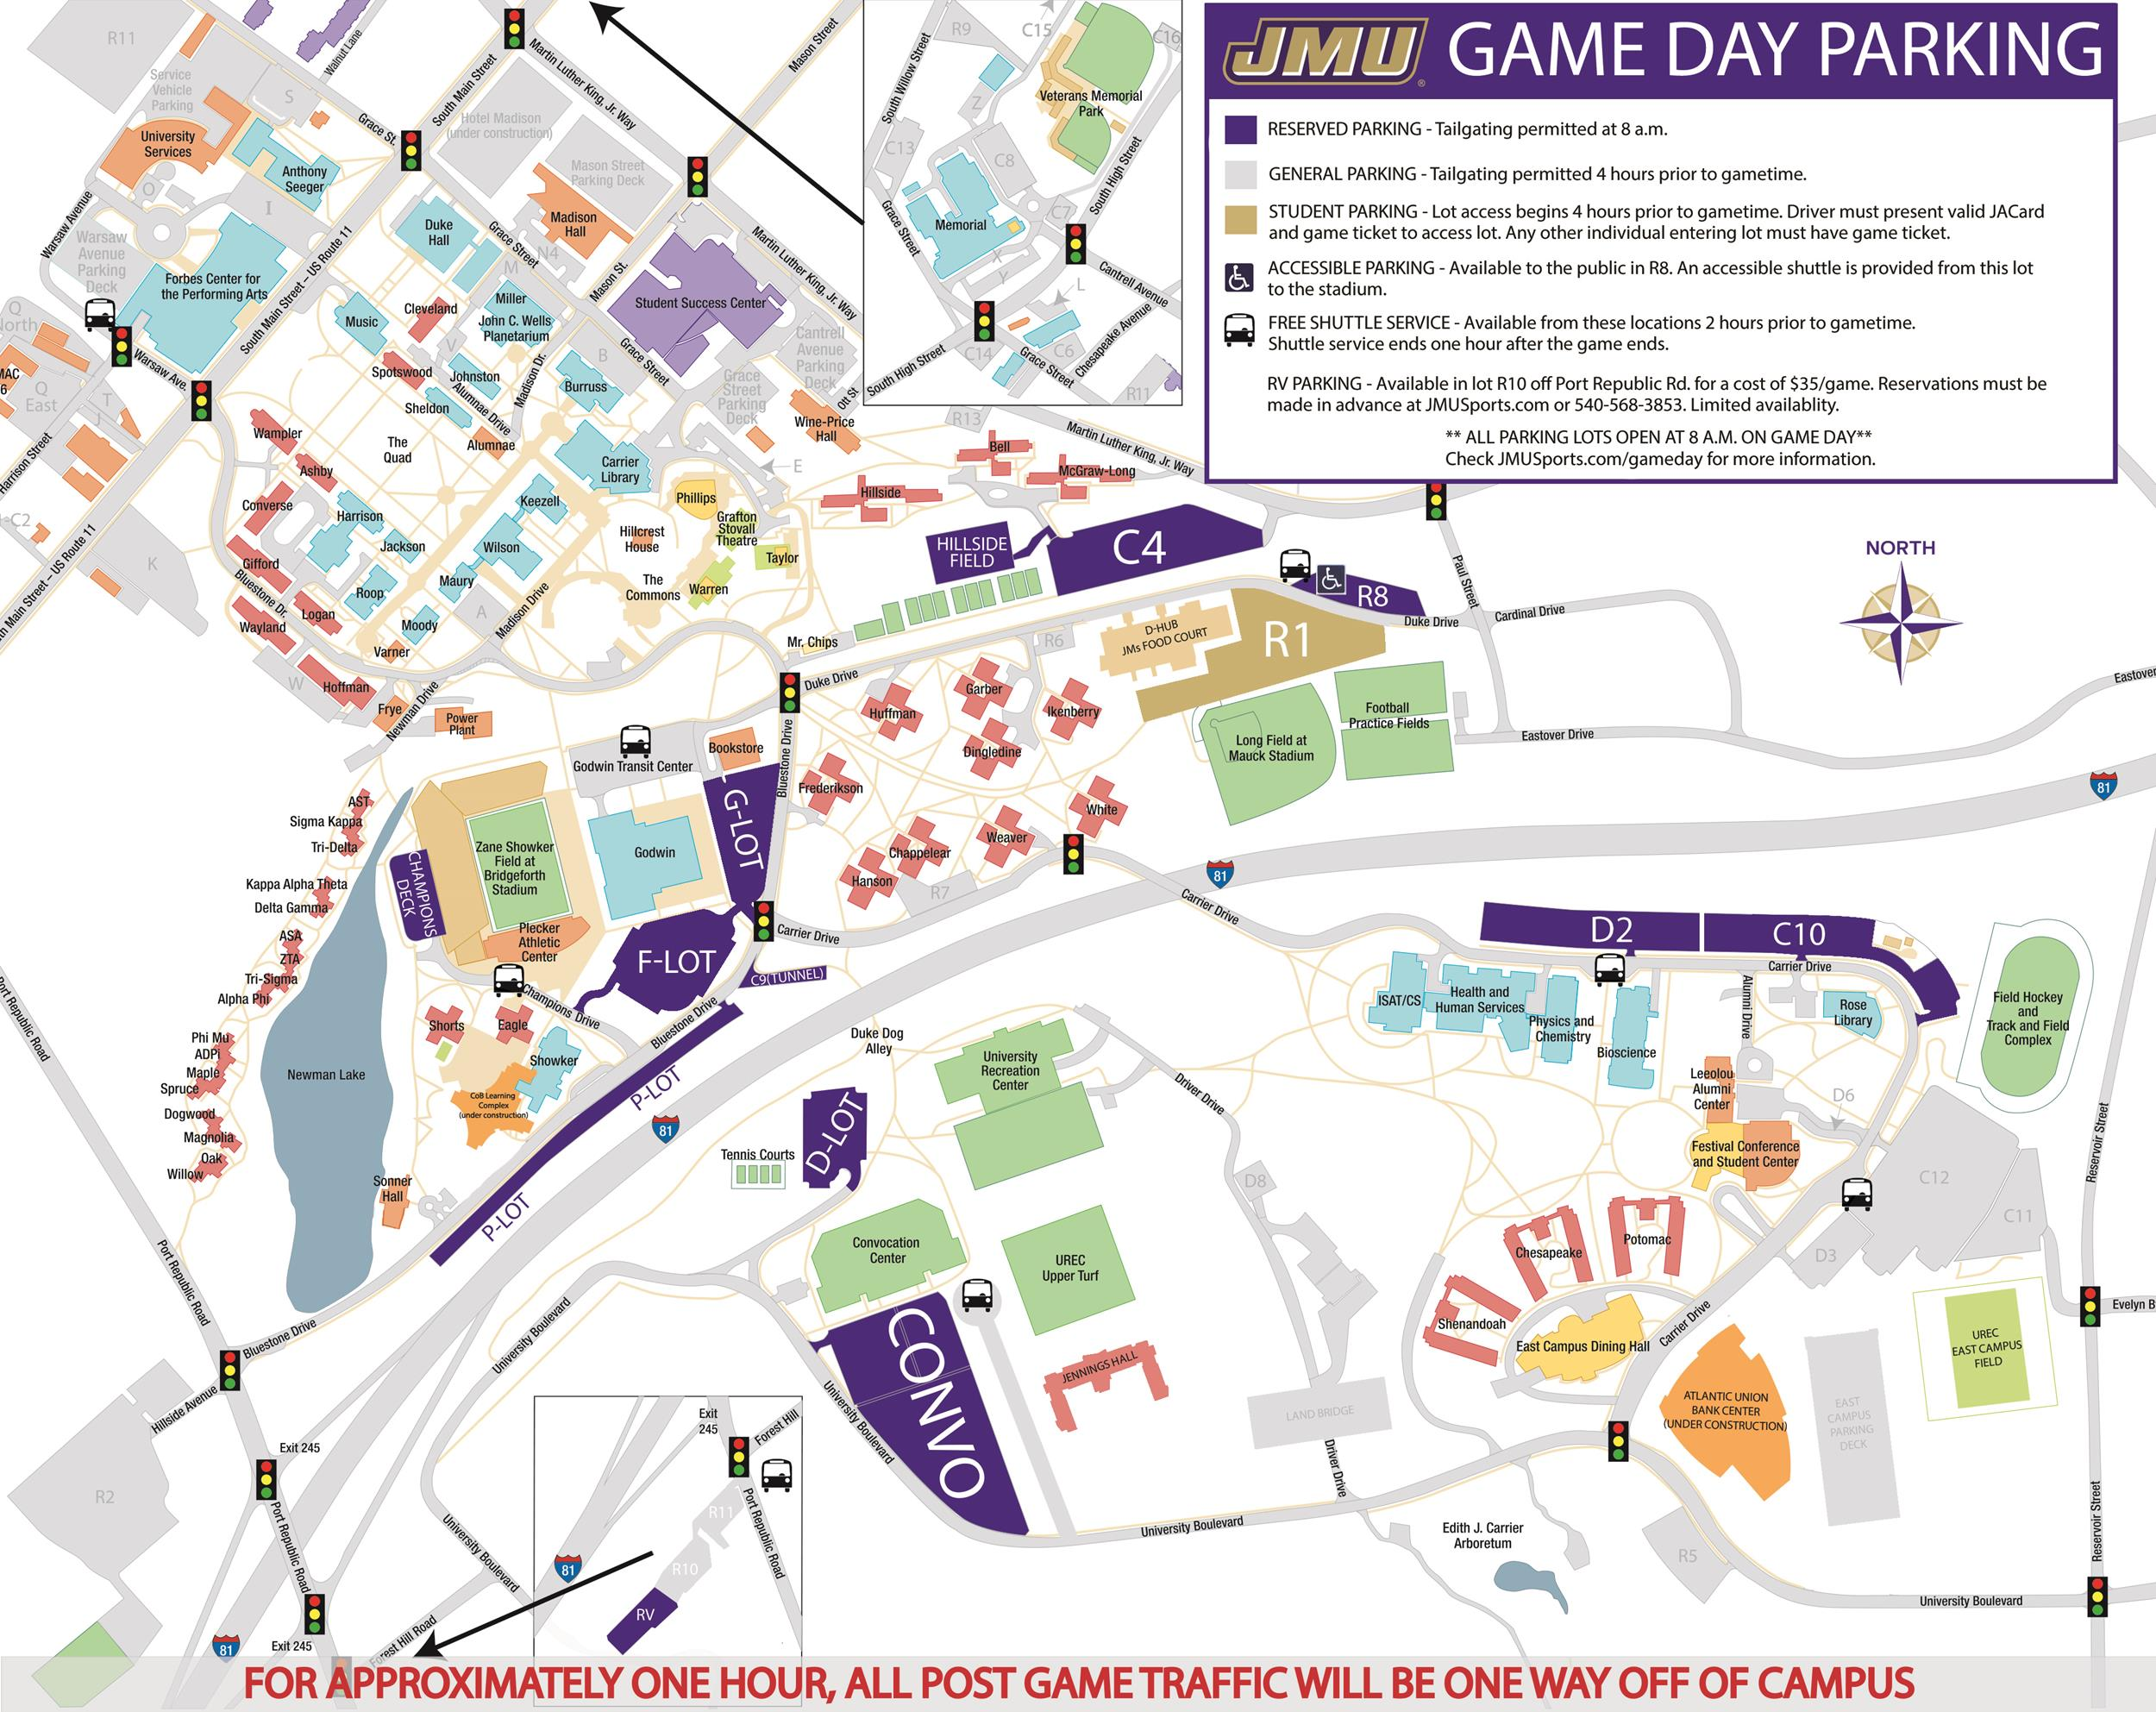 Jmu Parking Map Football Game Day Parking Updates   James Madison University Athletics